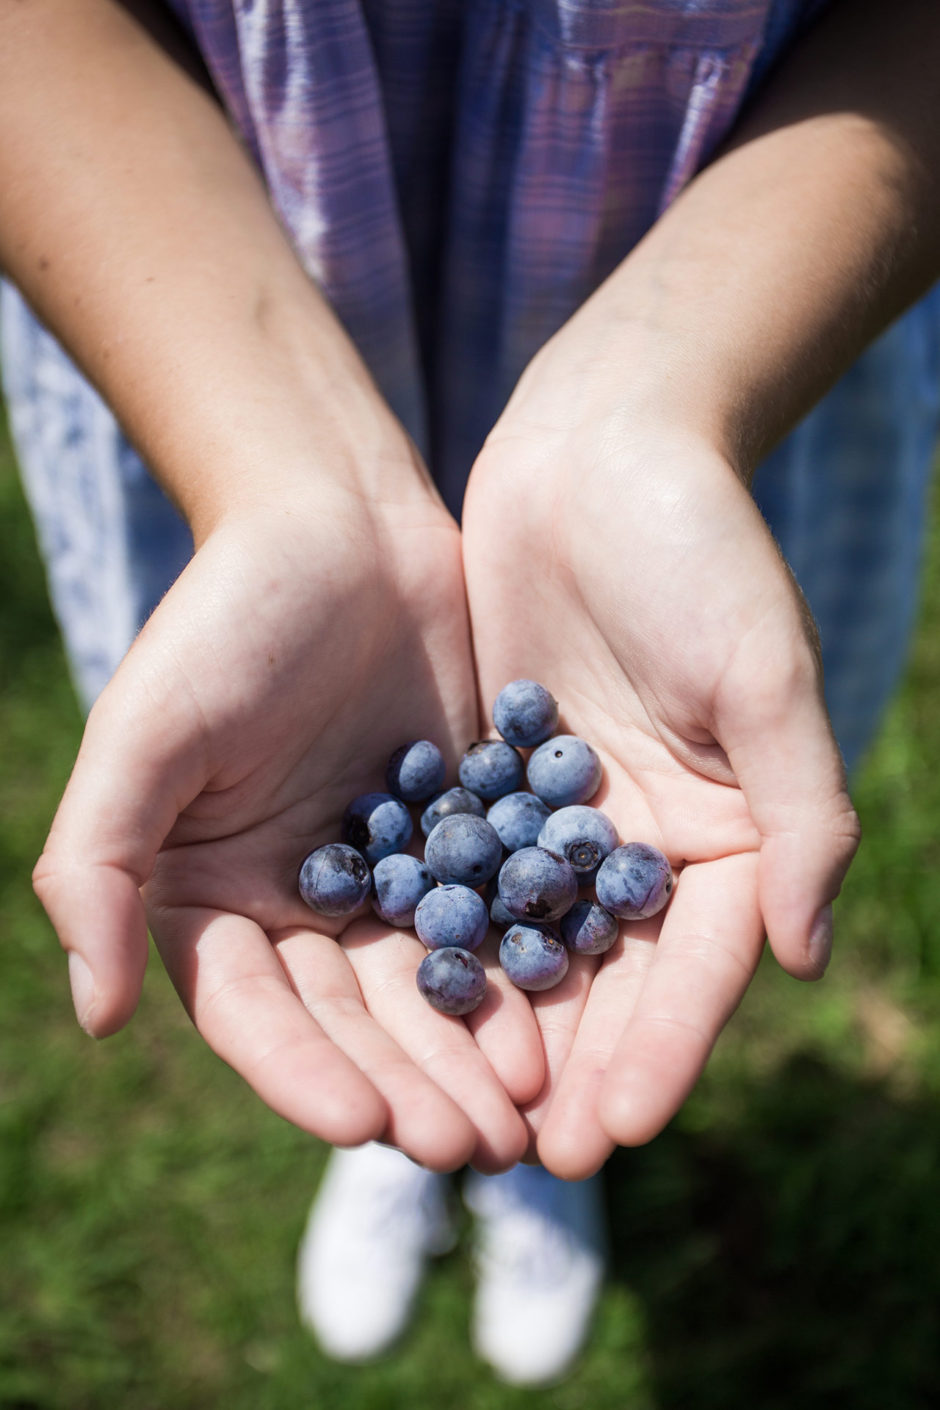 Pungo Virginia Beach blueberries don't reuse